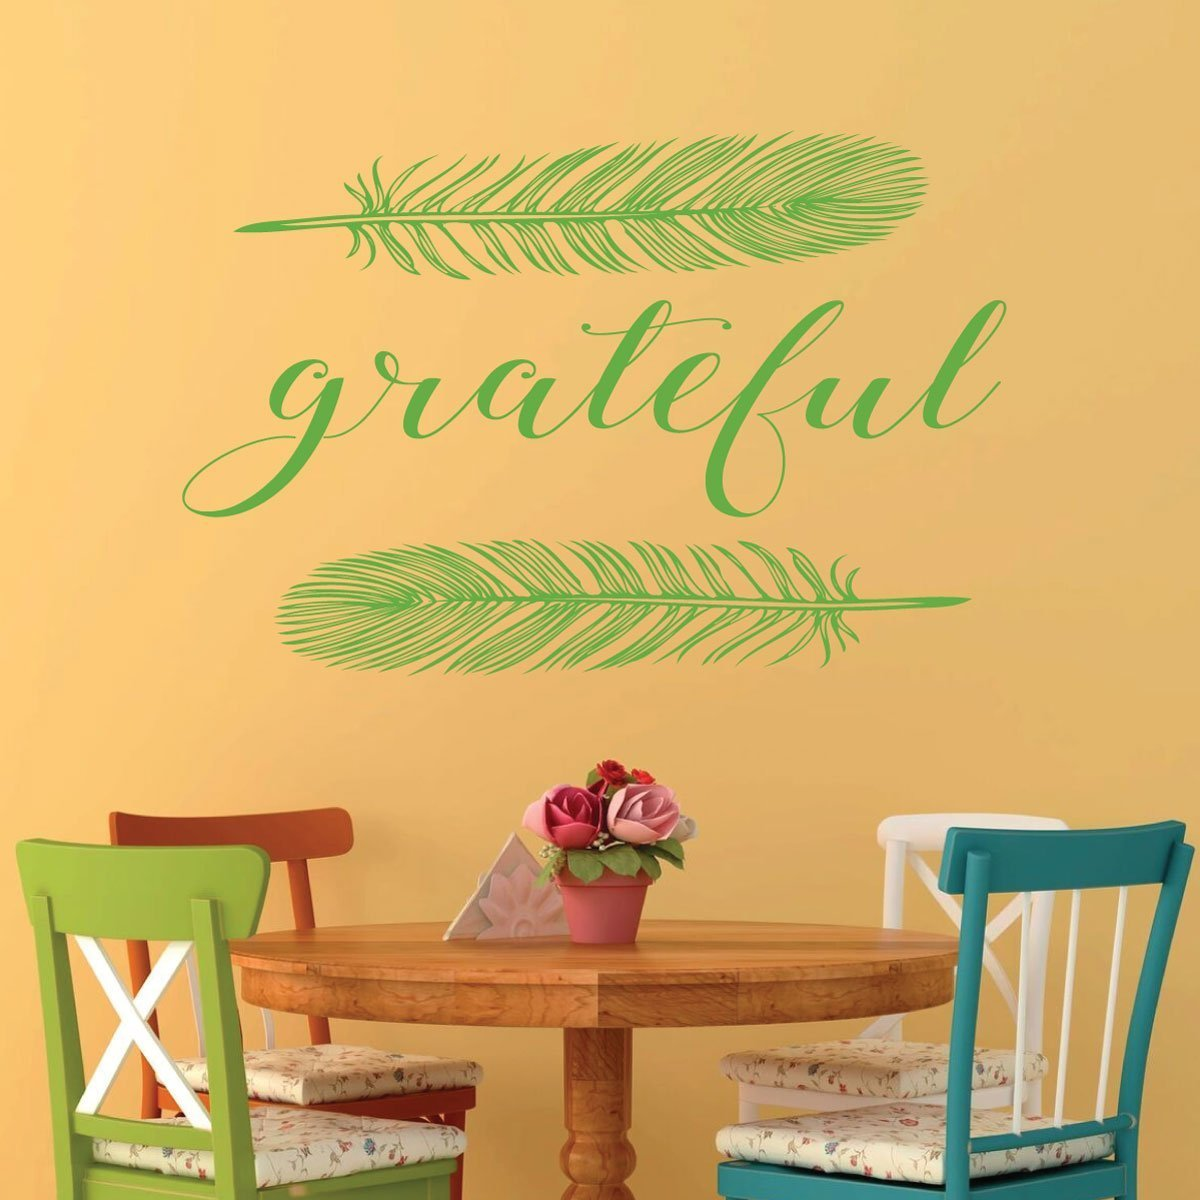 Thanksgiving Decor - Grateful With Feathers - Gratitude